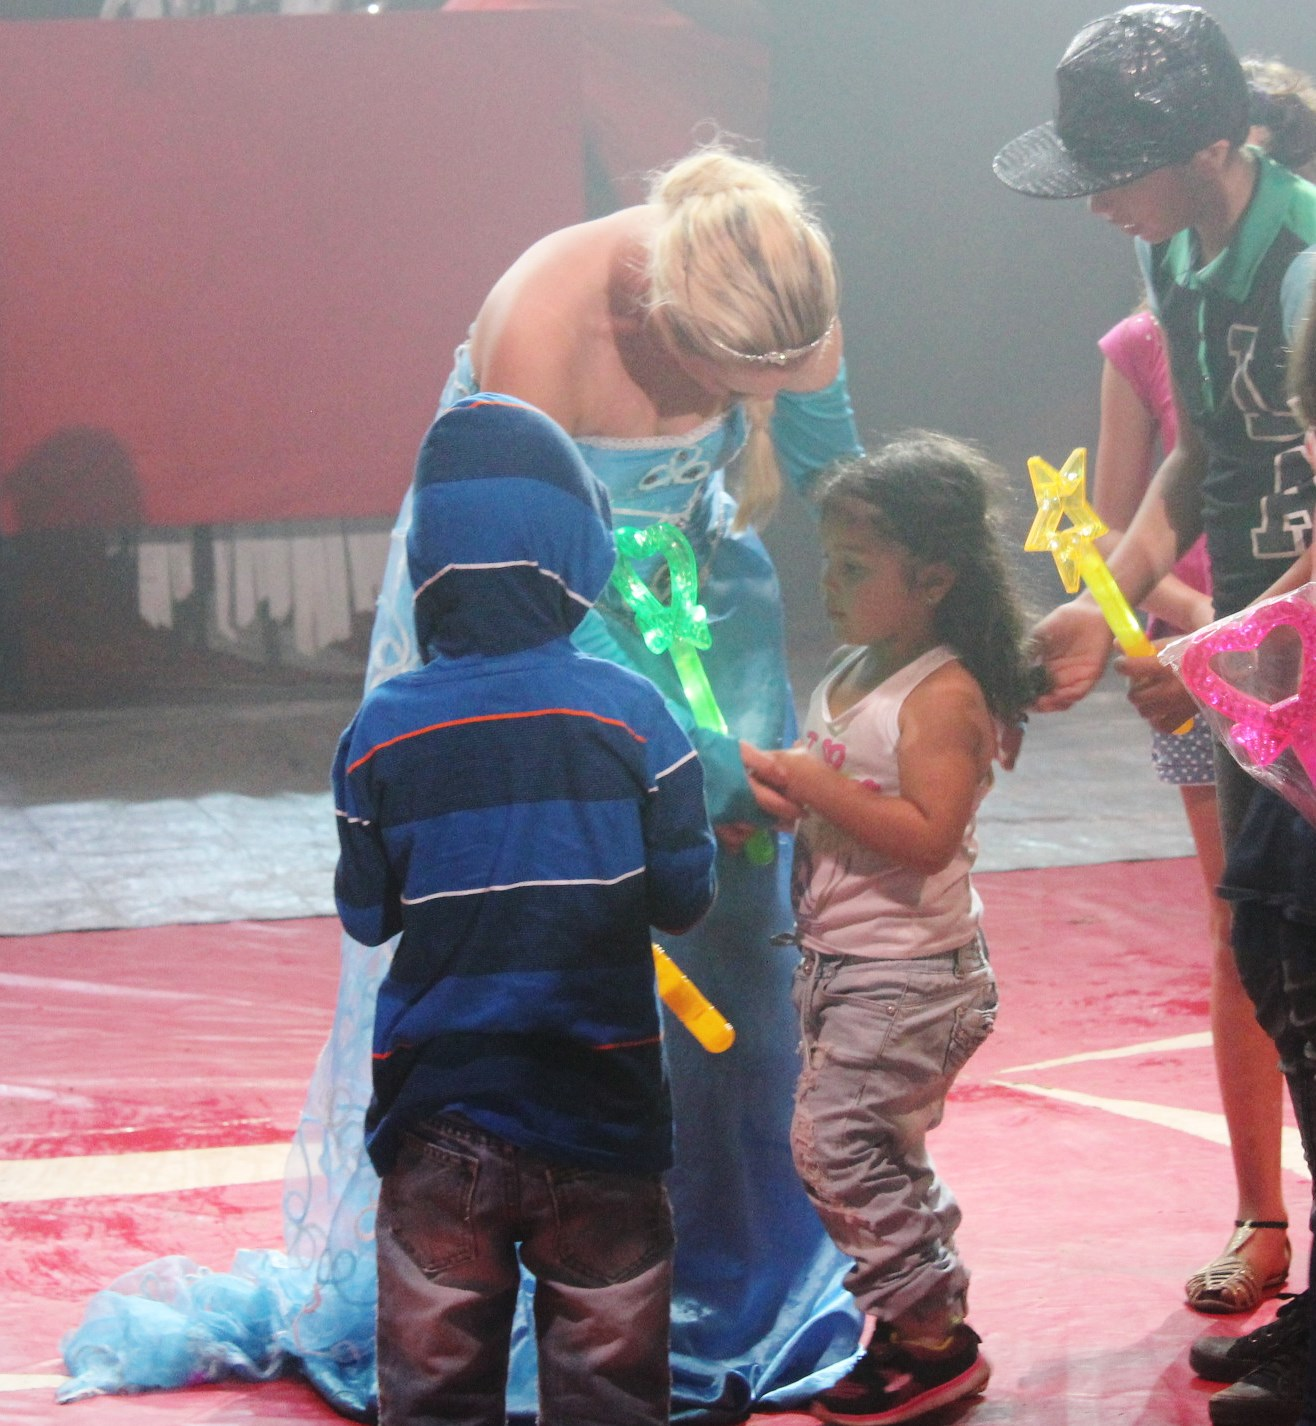 Irene-y-Princesa-1 When the Circus Came to Boquete Boquete Panama The Expat Life